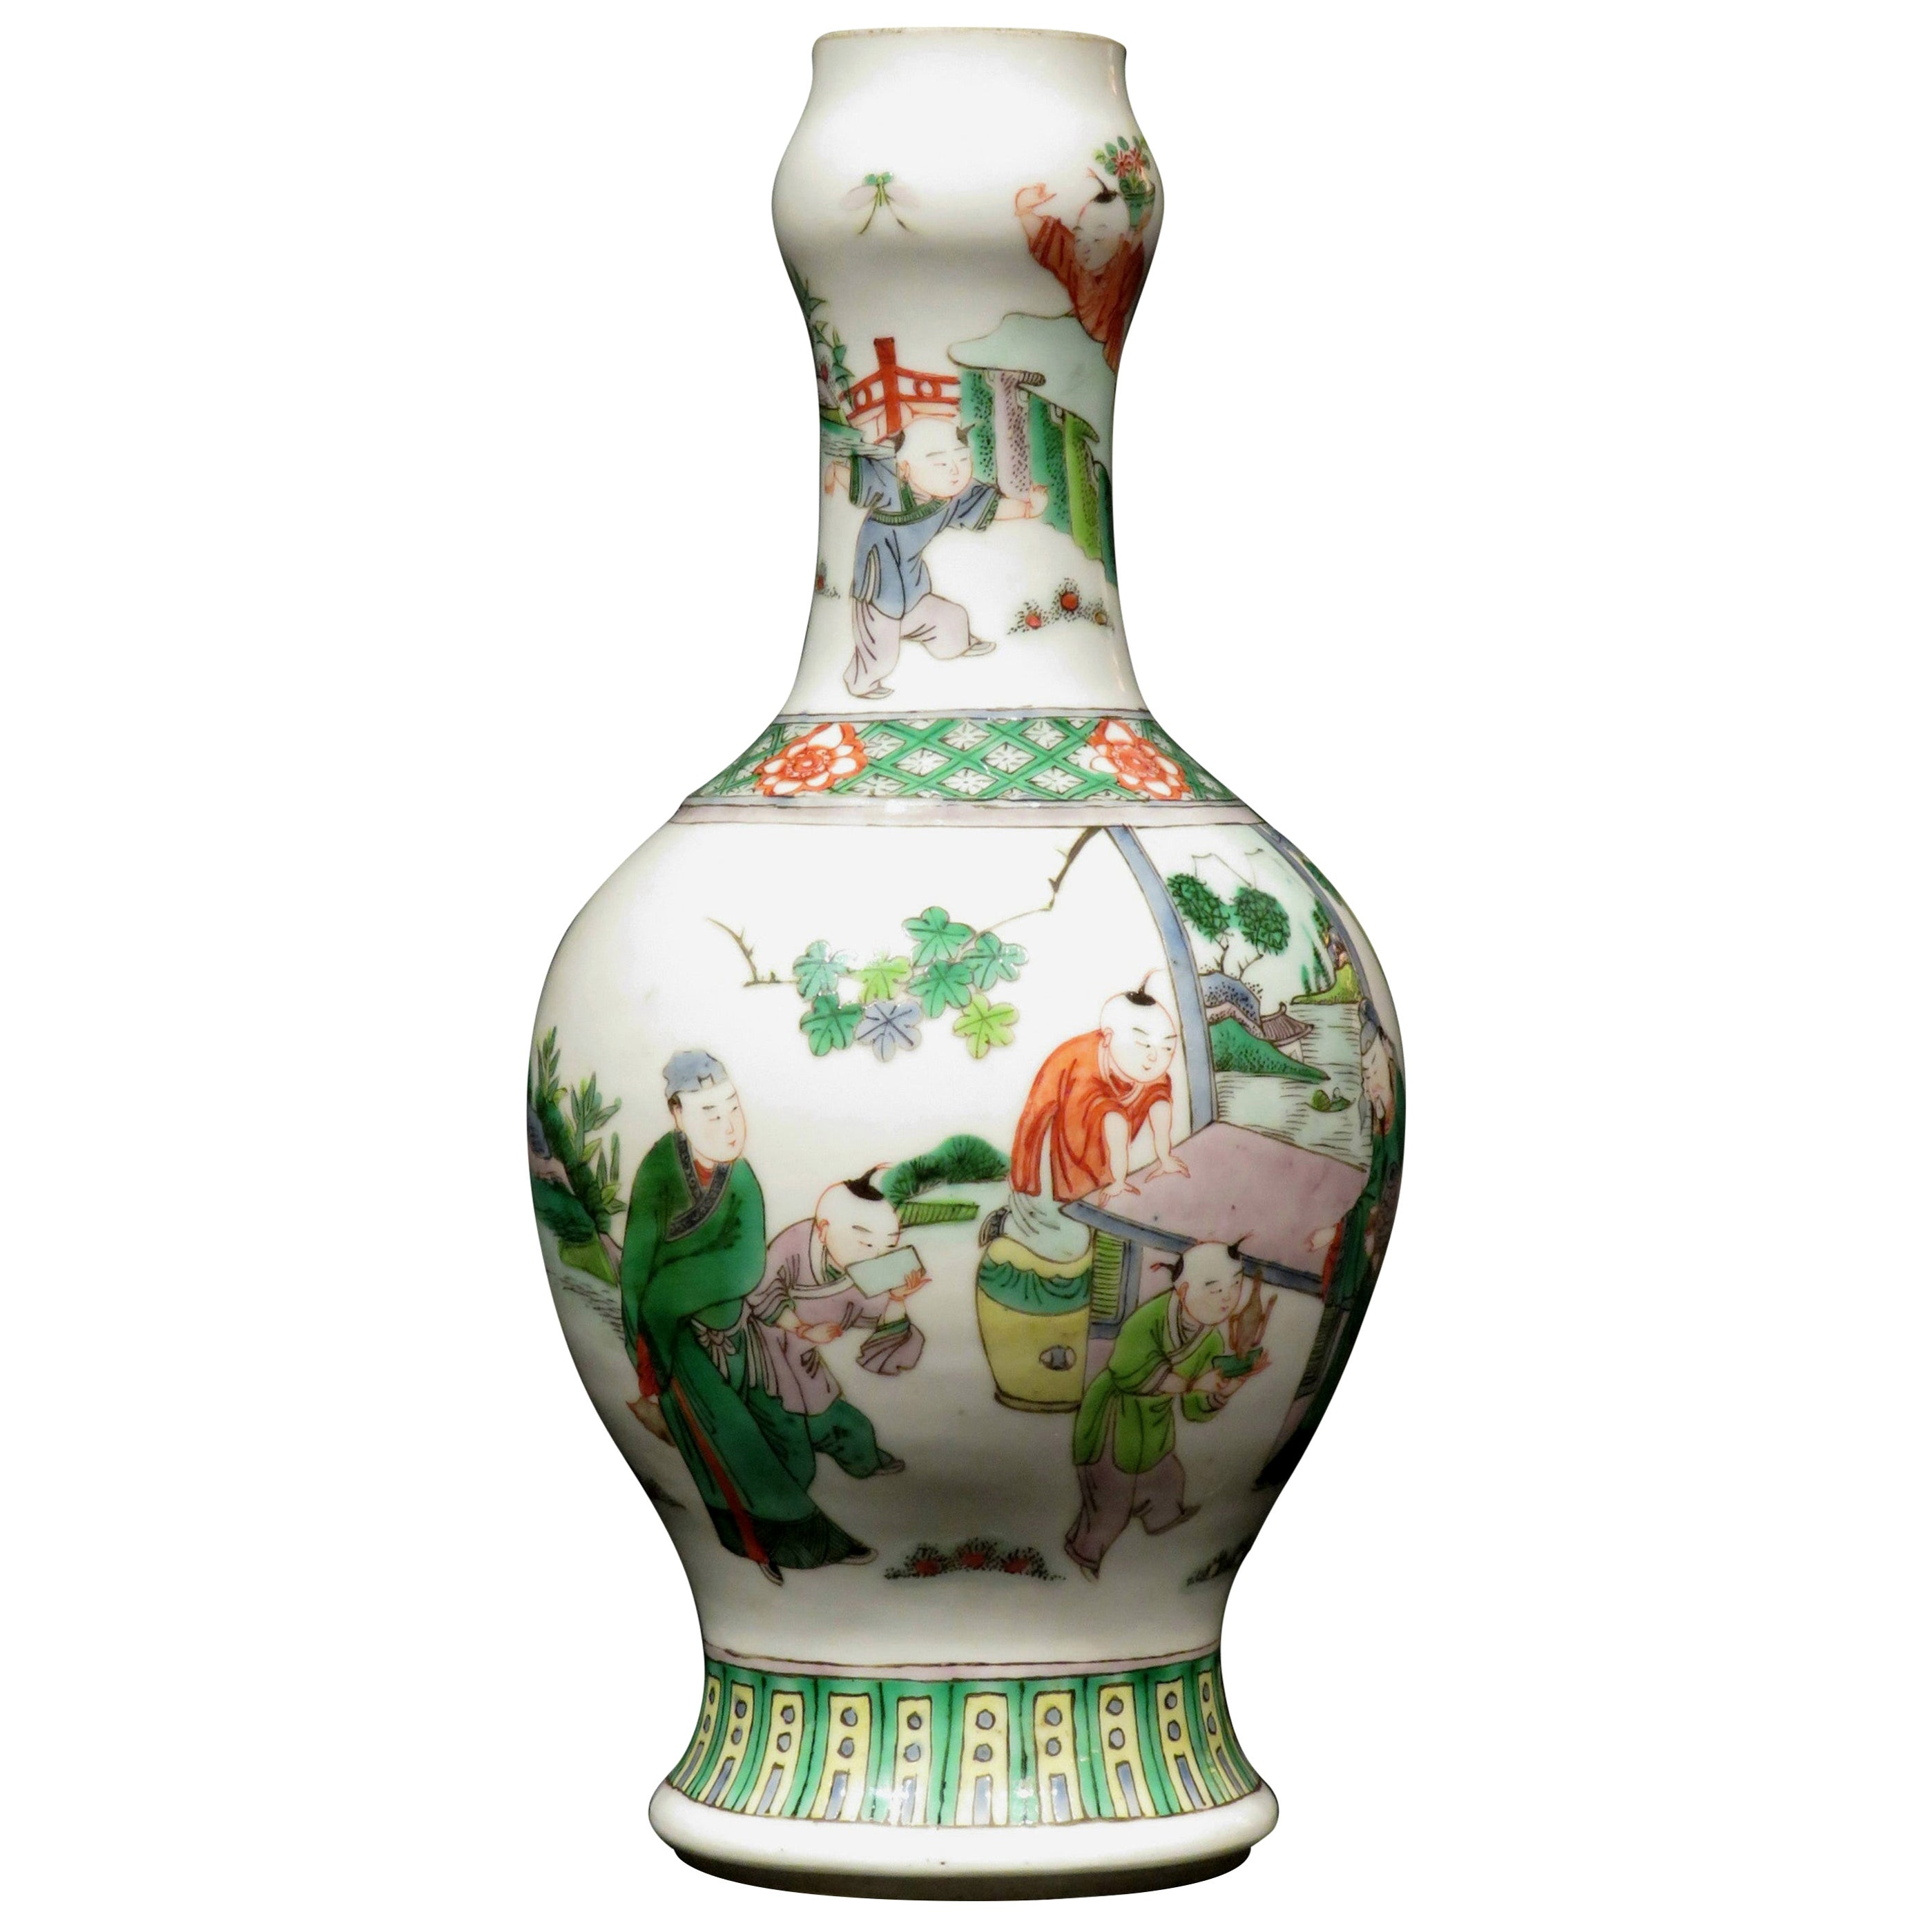 19th Century Chinese Famille Verte Porcelain Garlic Mouth Vase, Kangxi Marks